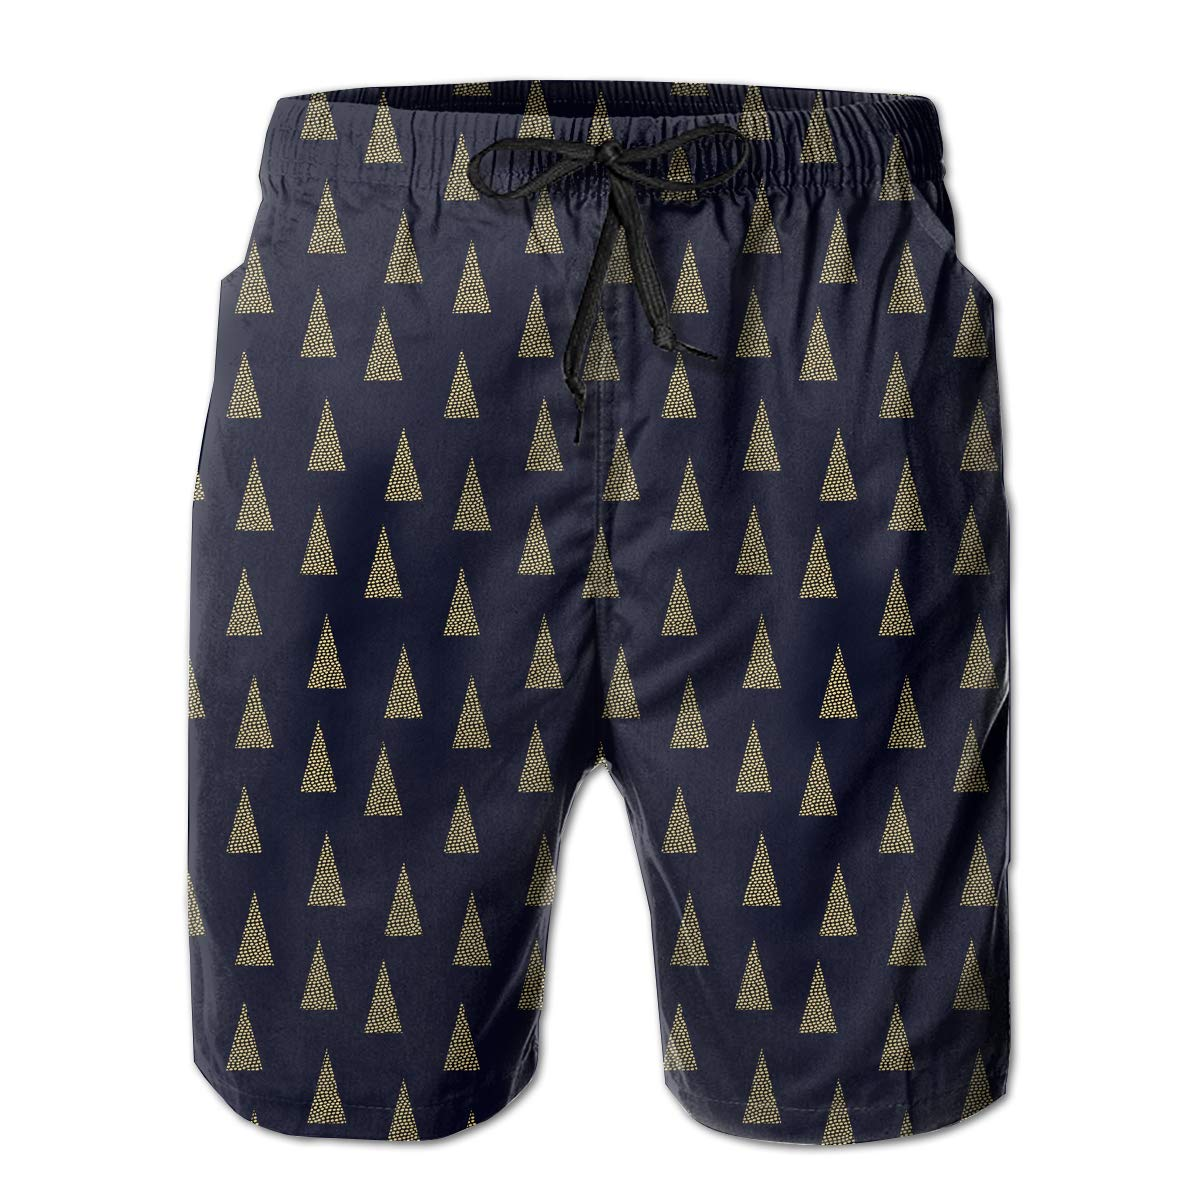 Christmas with Spruce Trees Dots Mens Beach Shorts Lightweight Running Trunks with 3 Pockets